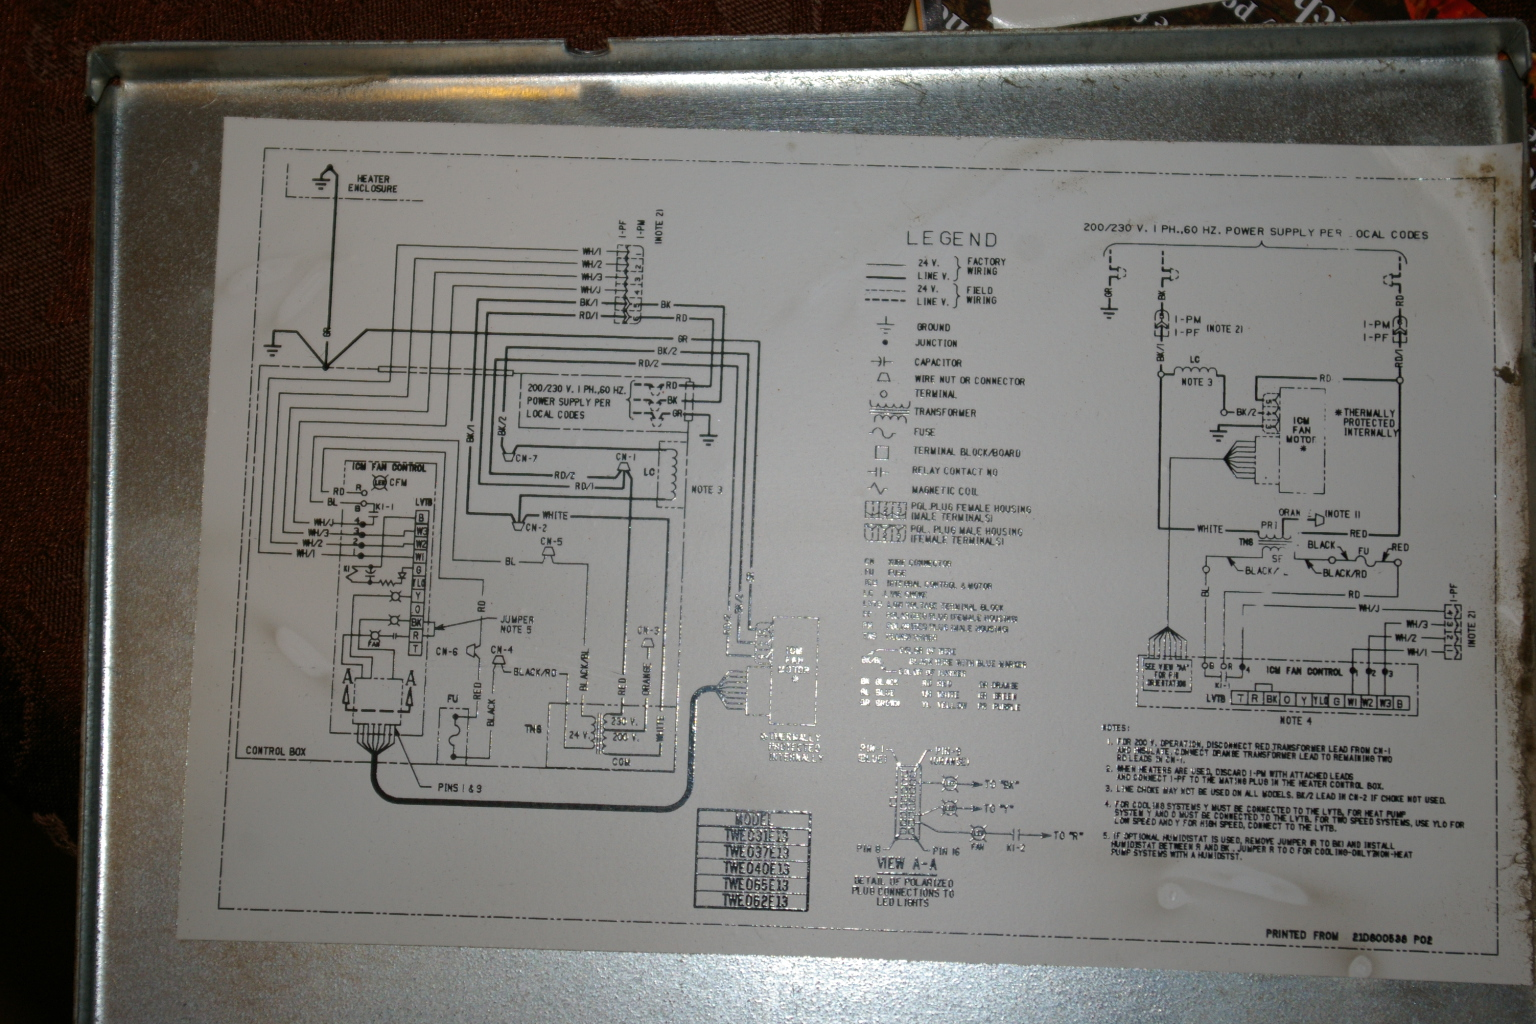 2013 08 29_210121_imgp2551 how to calculate air handling unit grihon com ac, coolers & devices trane xl1800 wiring diagram at virtualis.co